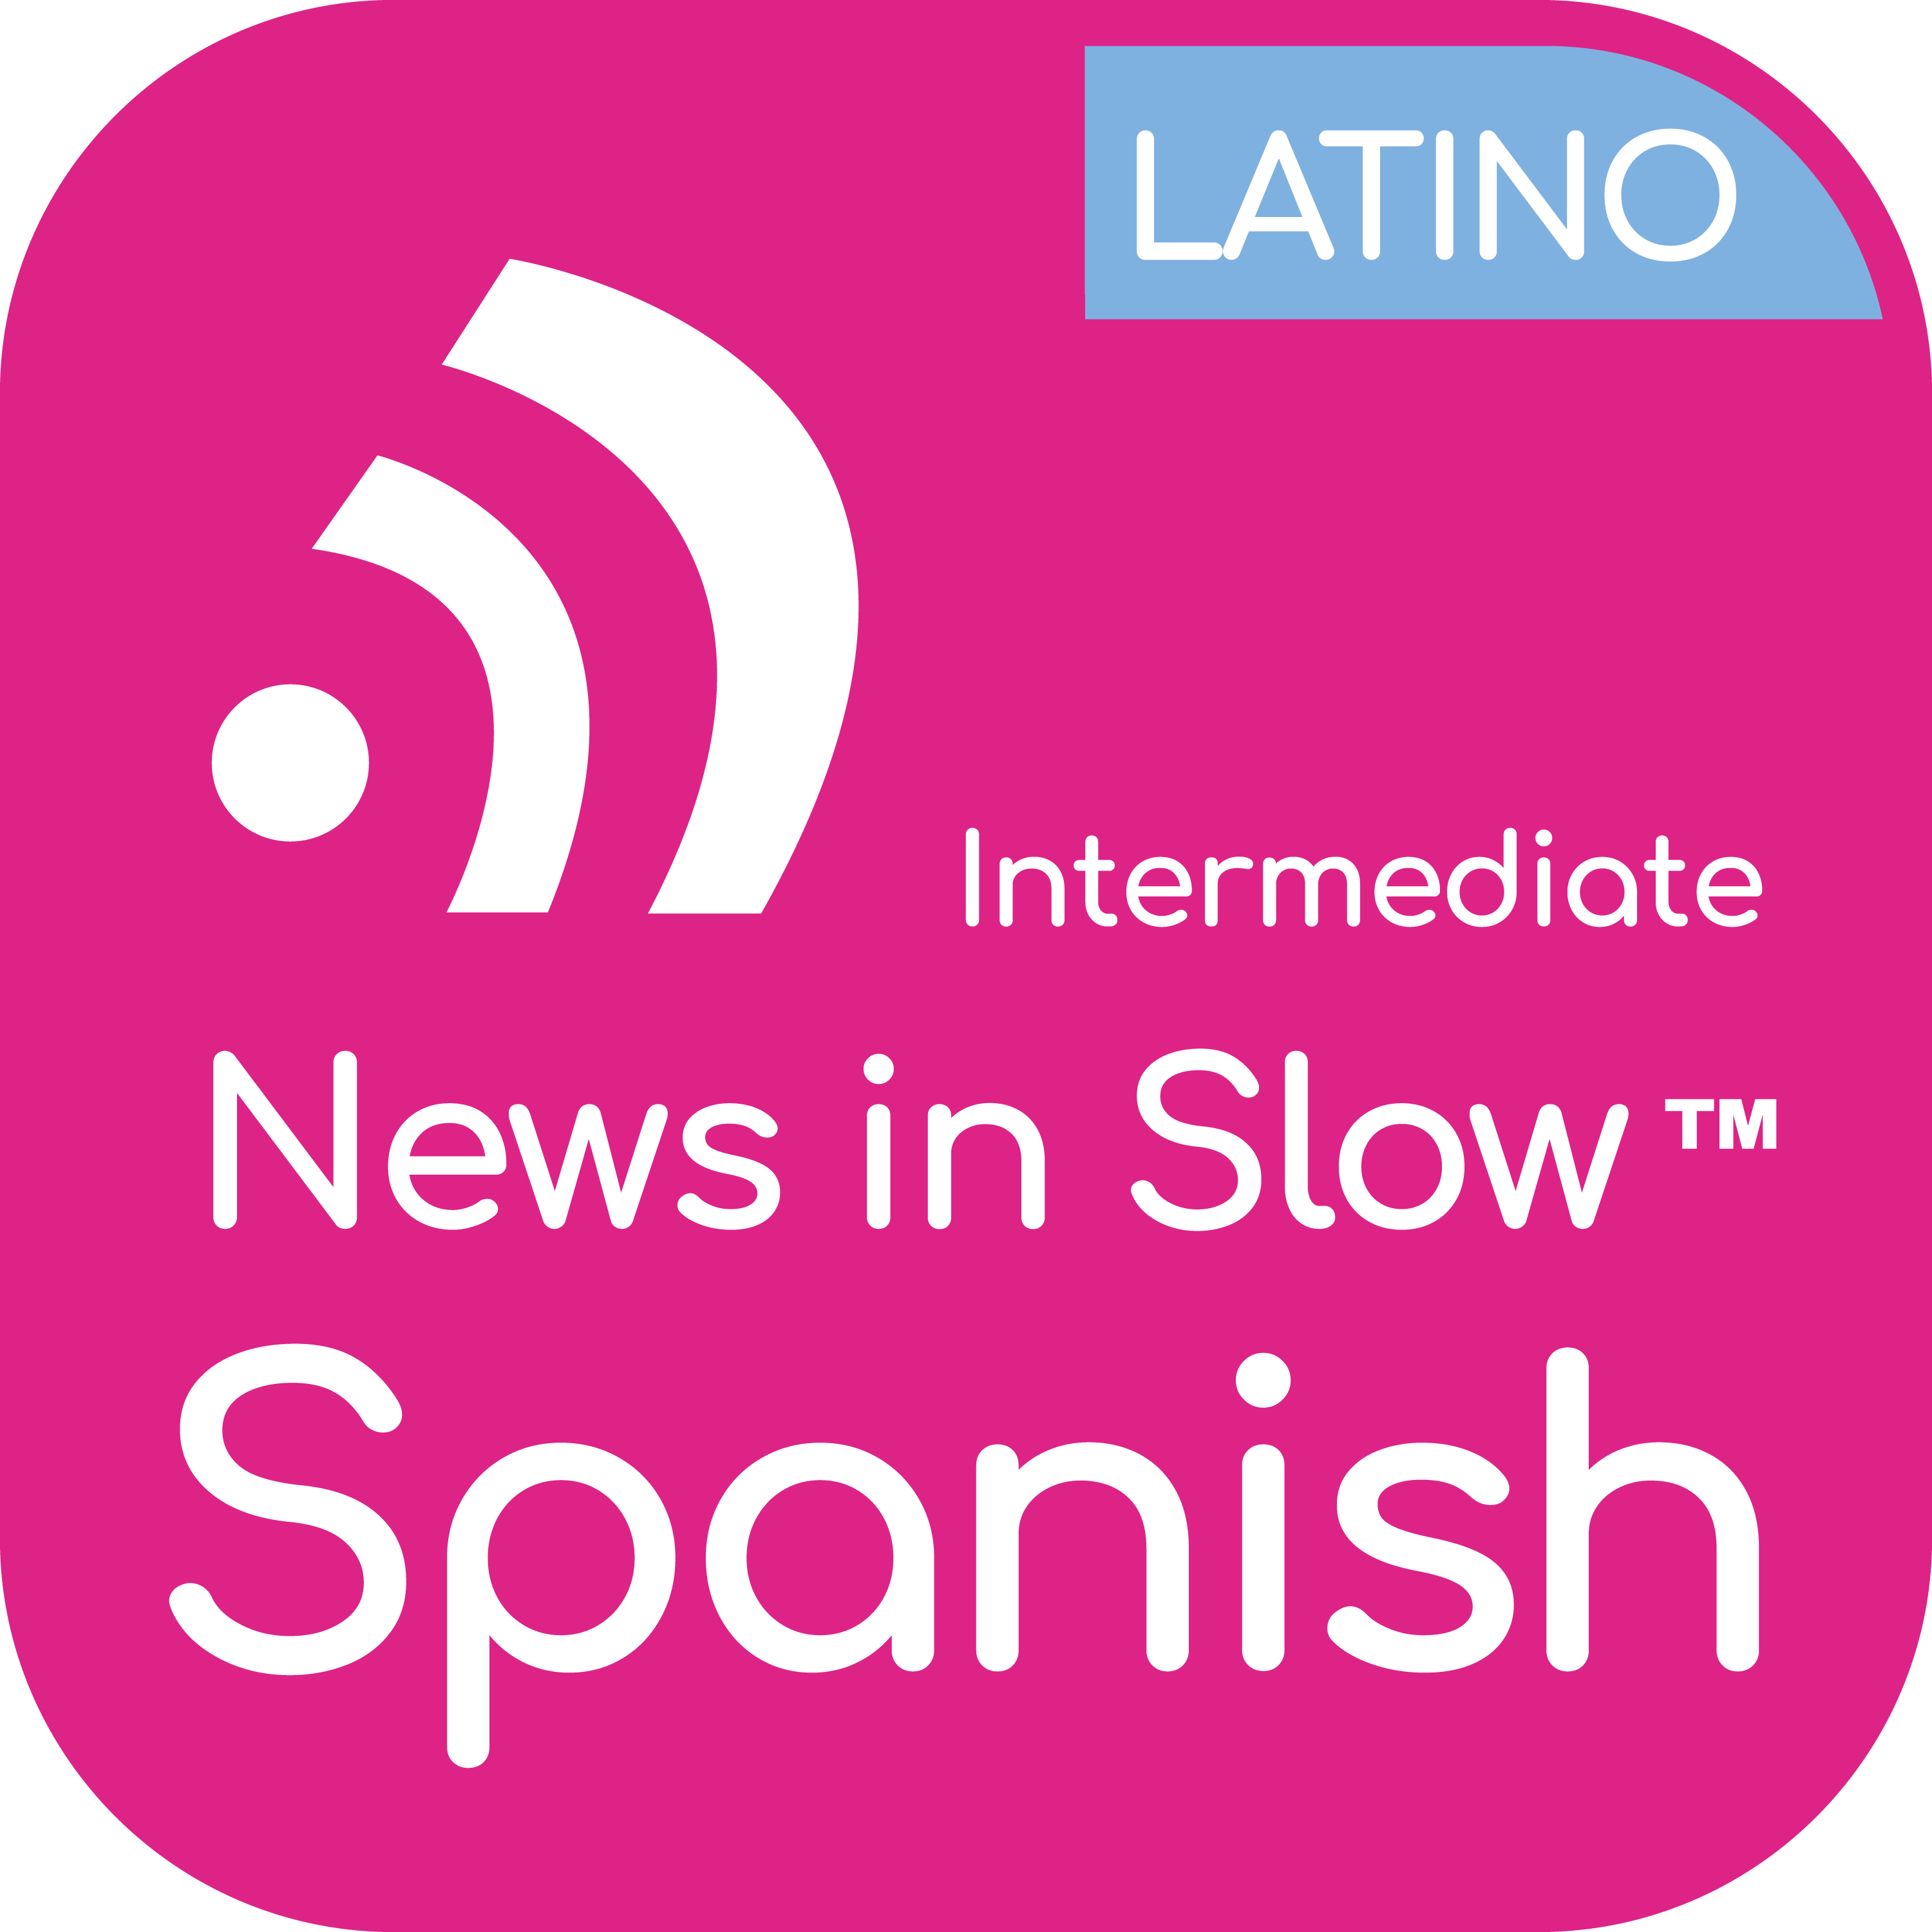 News In Slow Spanish Latino #376 - Learn Spanish Through Current Events